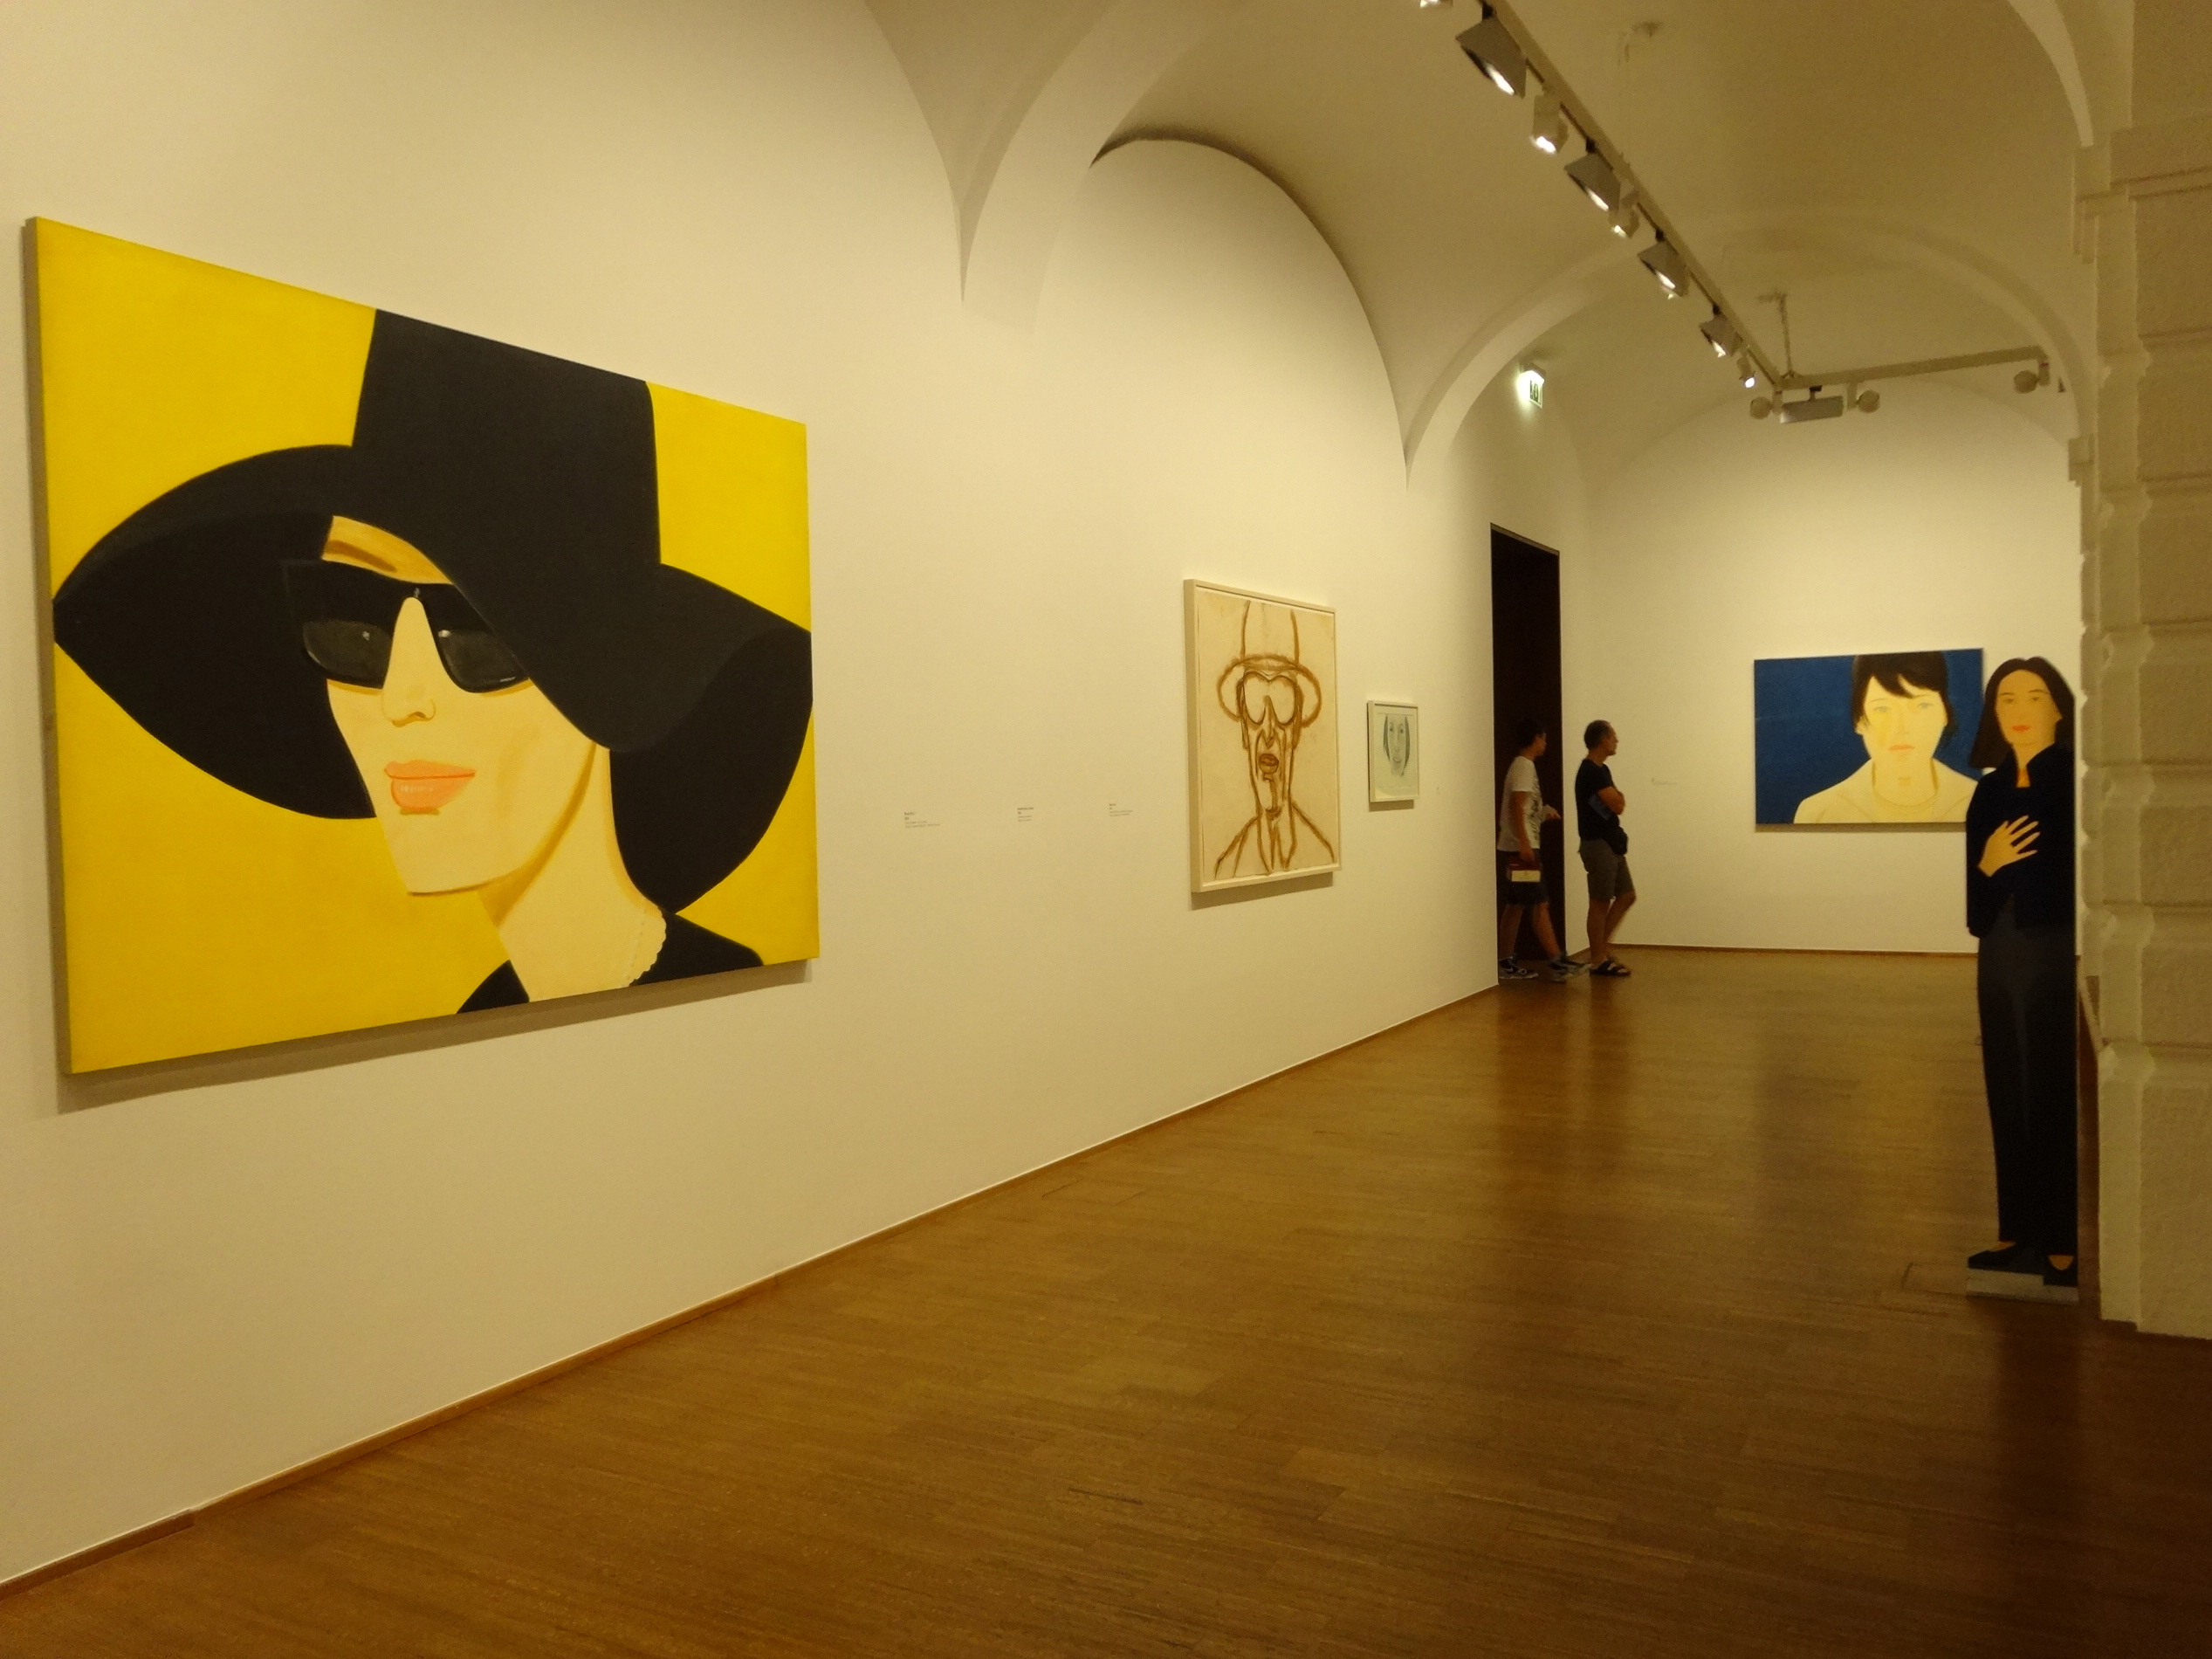 Alex Katz exhibition at Albertina museum